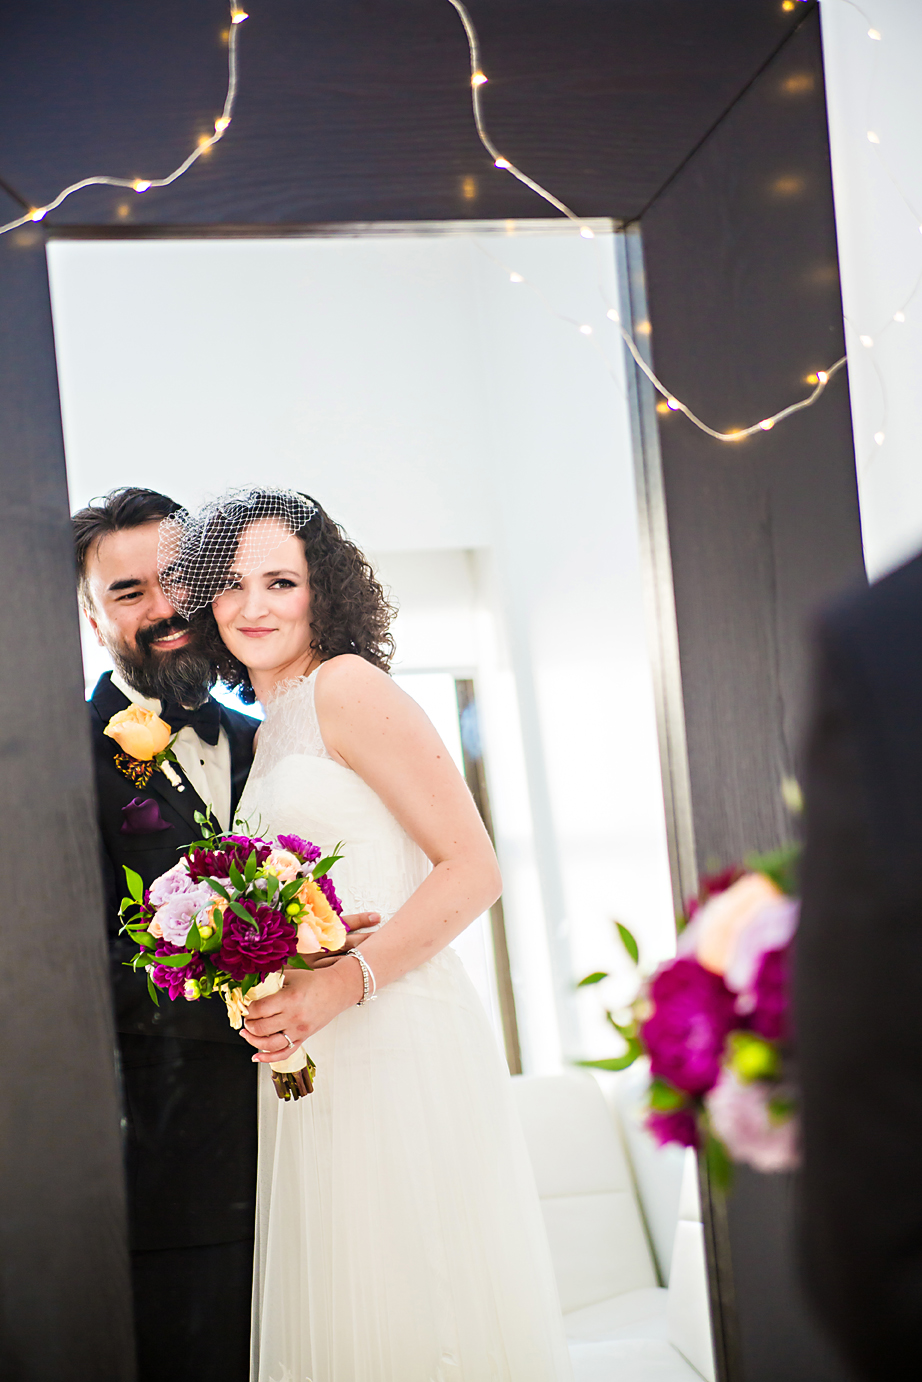 luxe-by-lindsay-charleston-south-carolina-sc-lowcountry-wedding-photographer-bride-and-groom-mirror.jpg